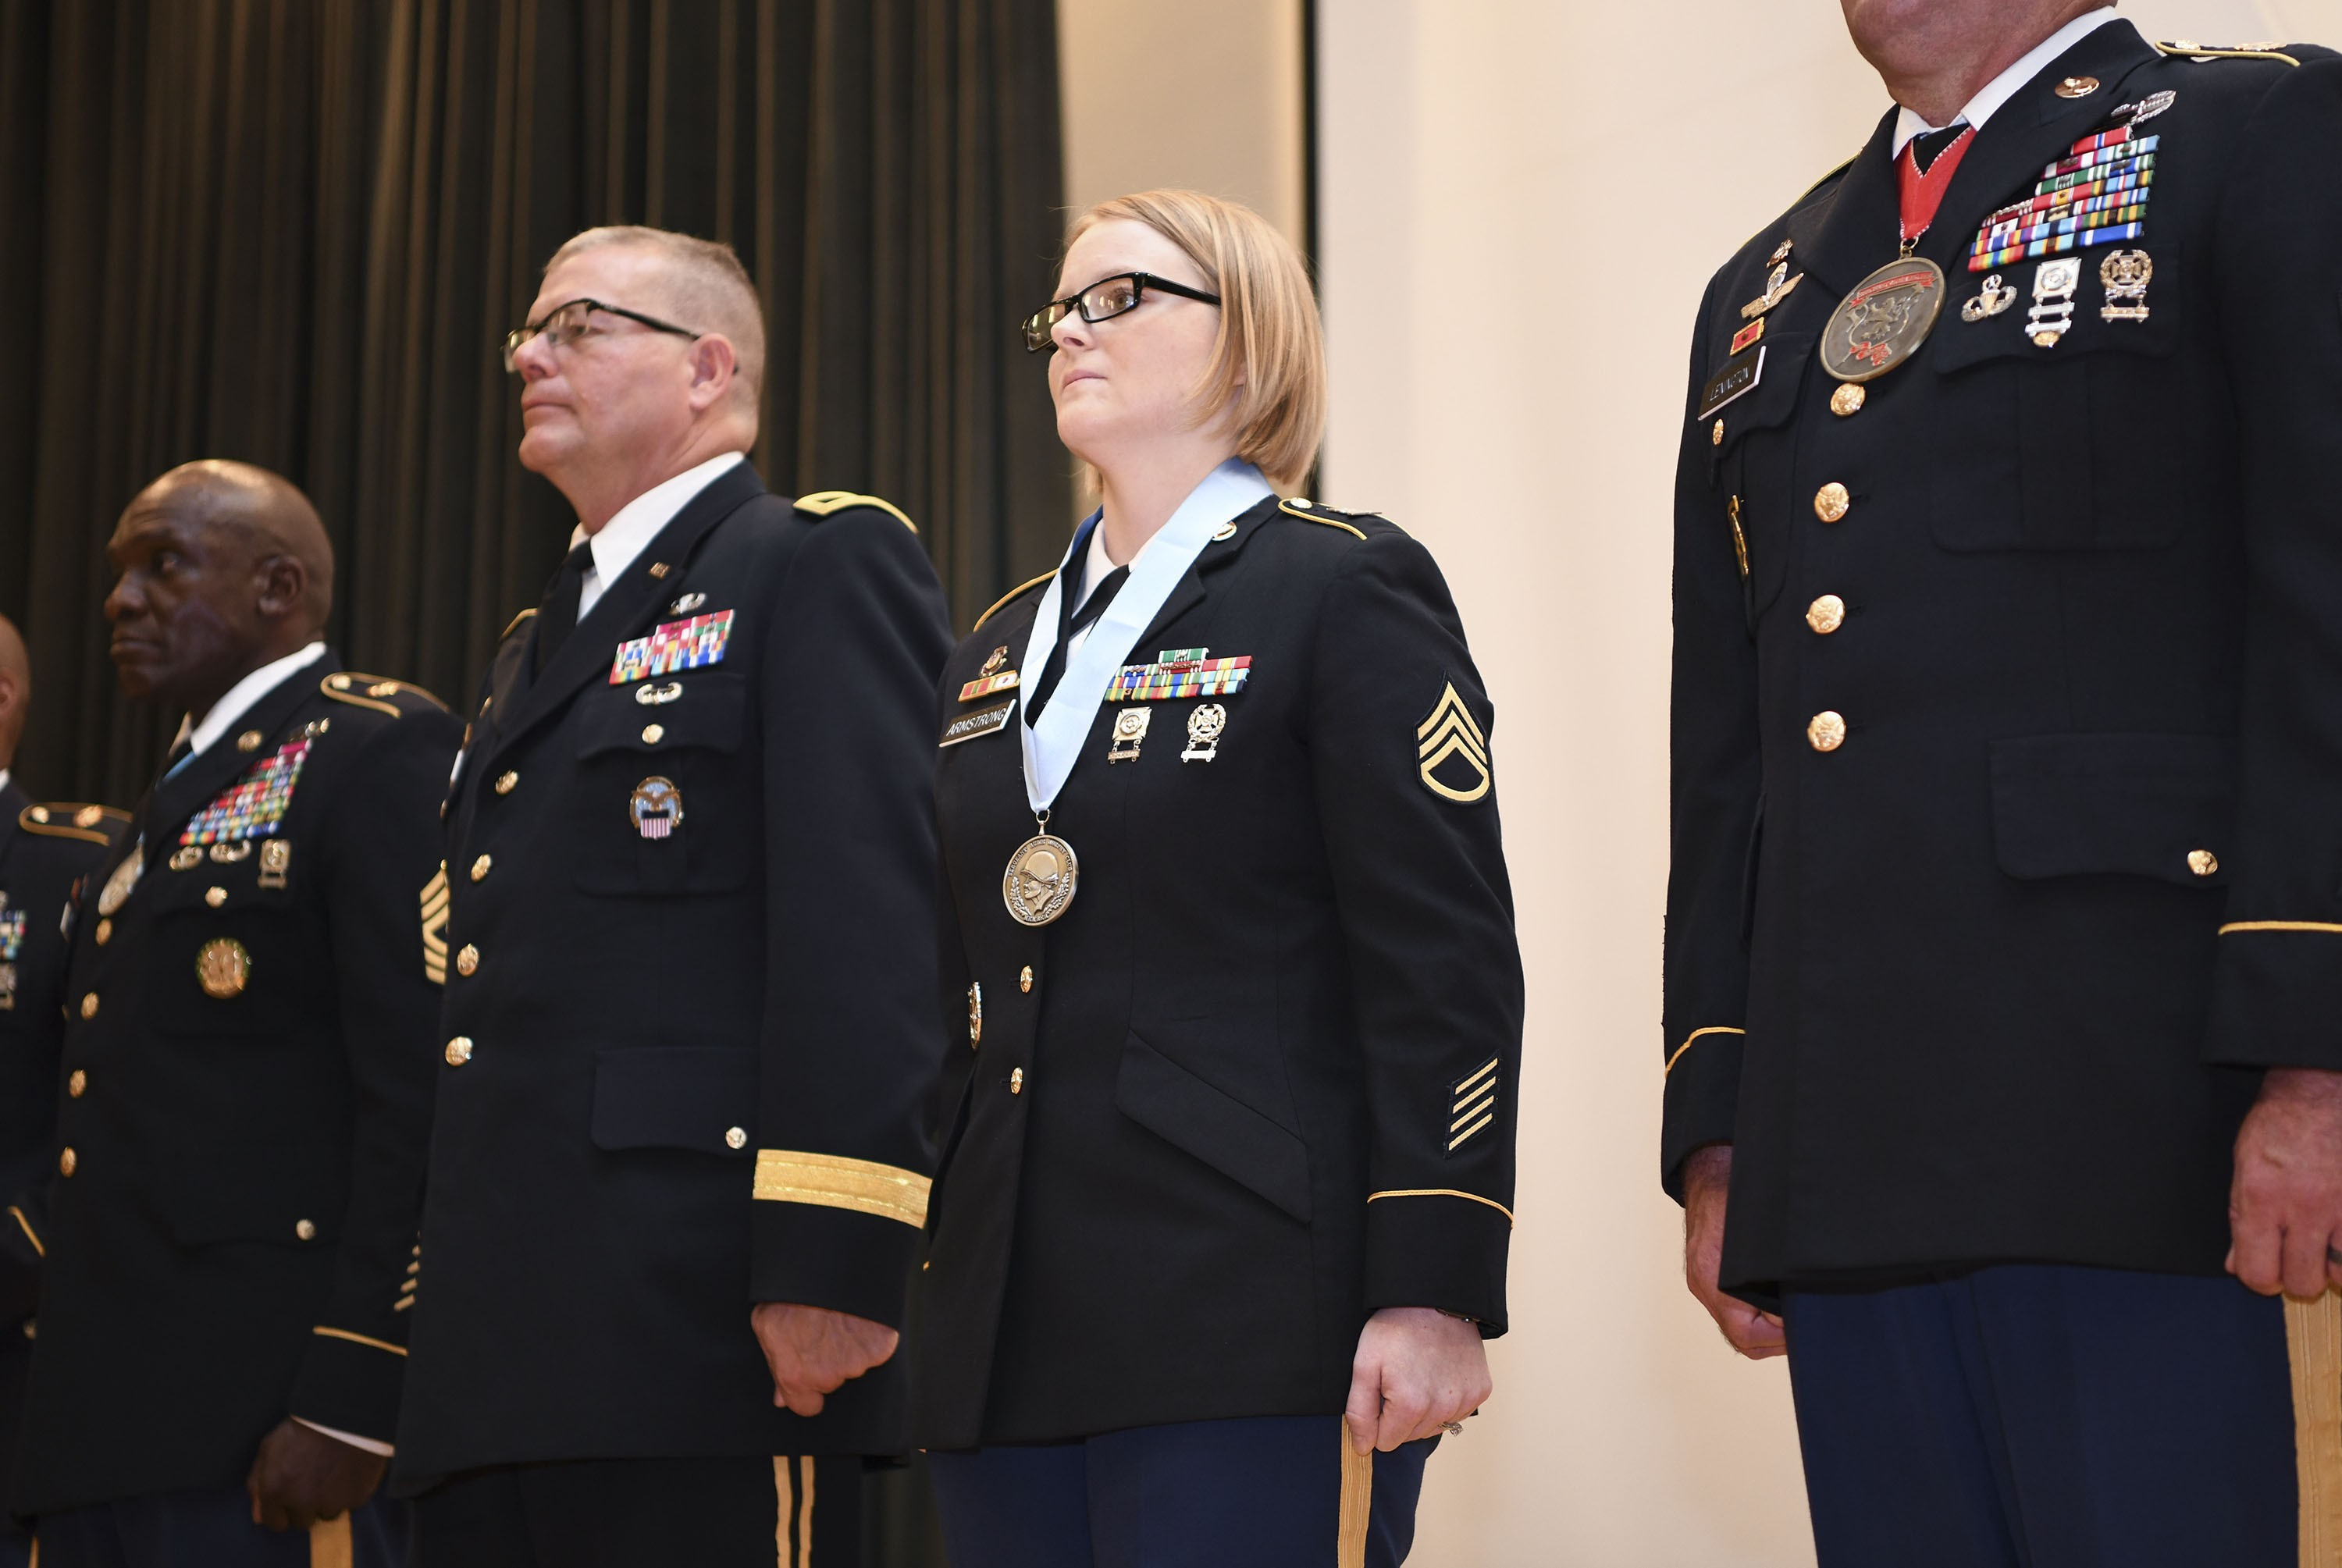 Career Counselor Reaches Career Milestone With Induction Into Sergeant Aumurphy Club